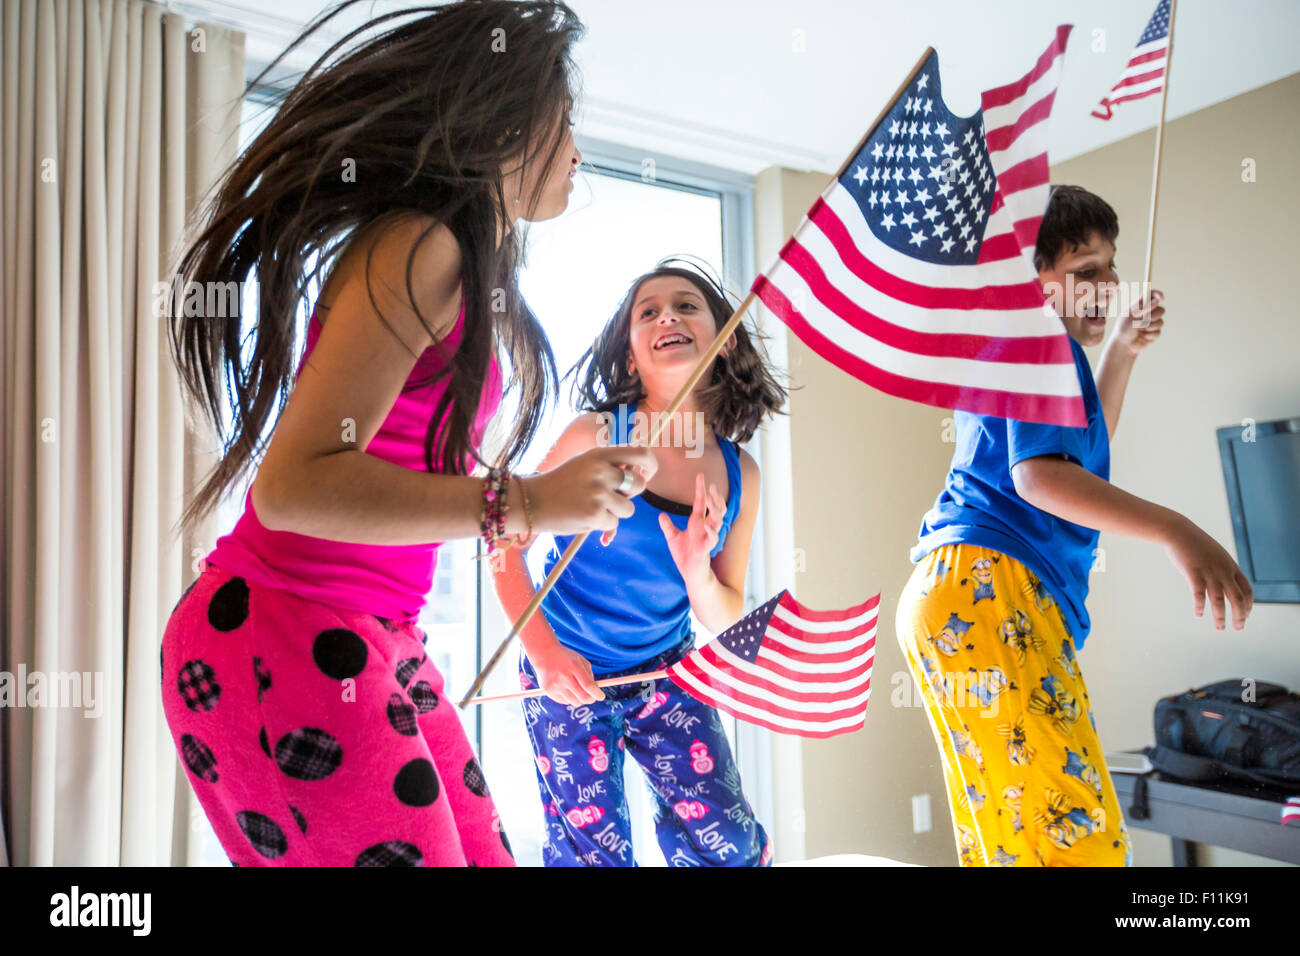 Hispanic children jumping with American flags Stock Photo